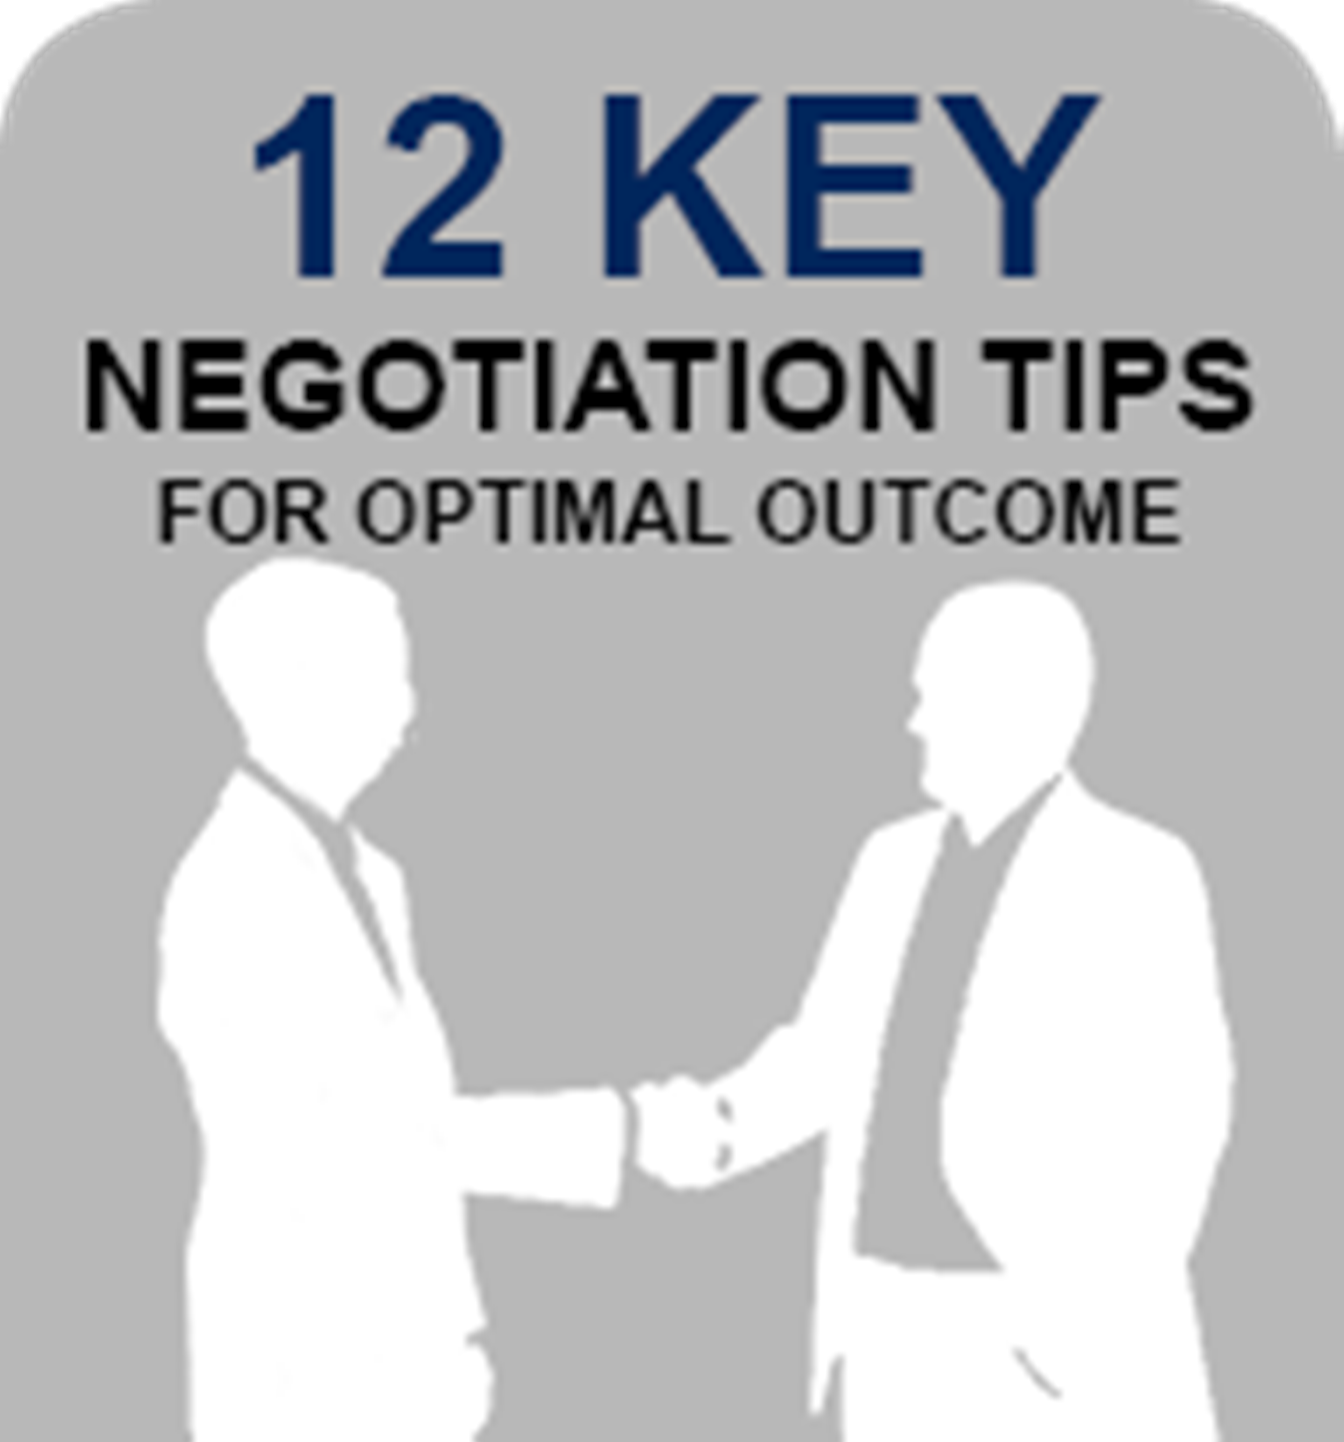 Tech M&A Monthly: M&A Negotiation Tips #11 & 12